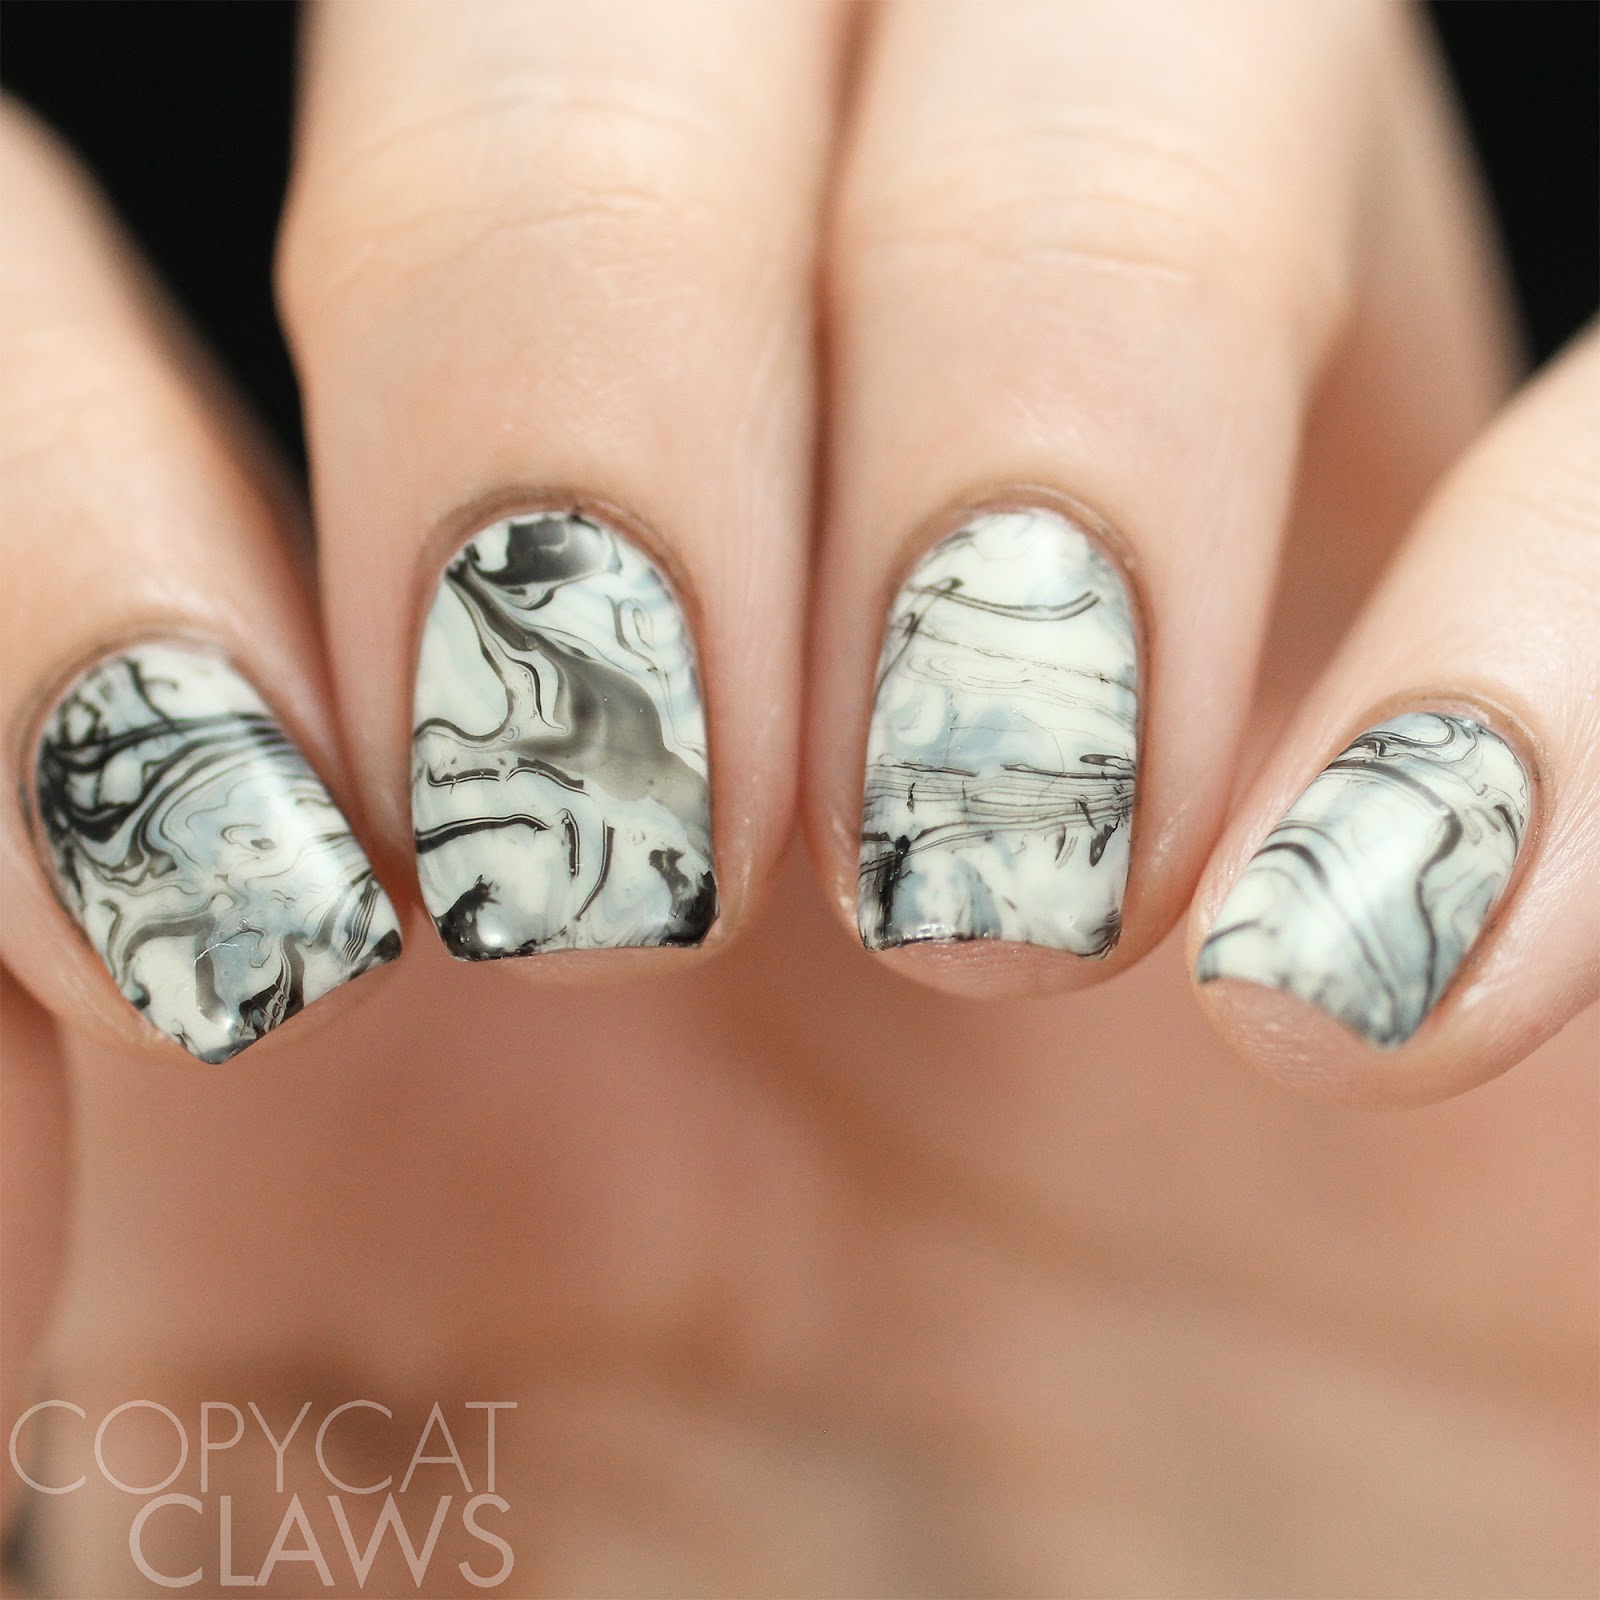 Copycat Claws Nail Challenge Collaborative